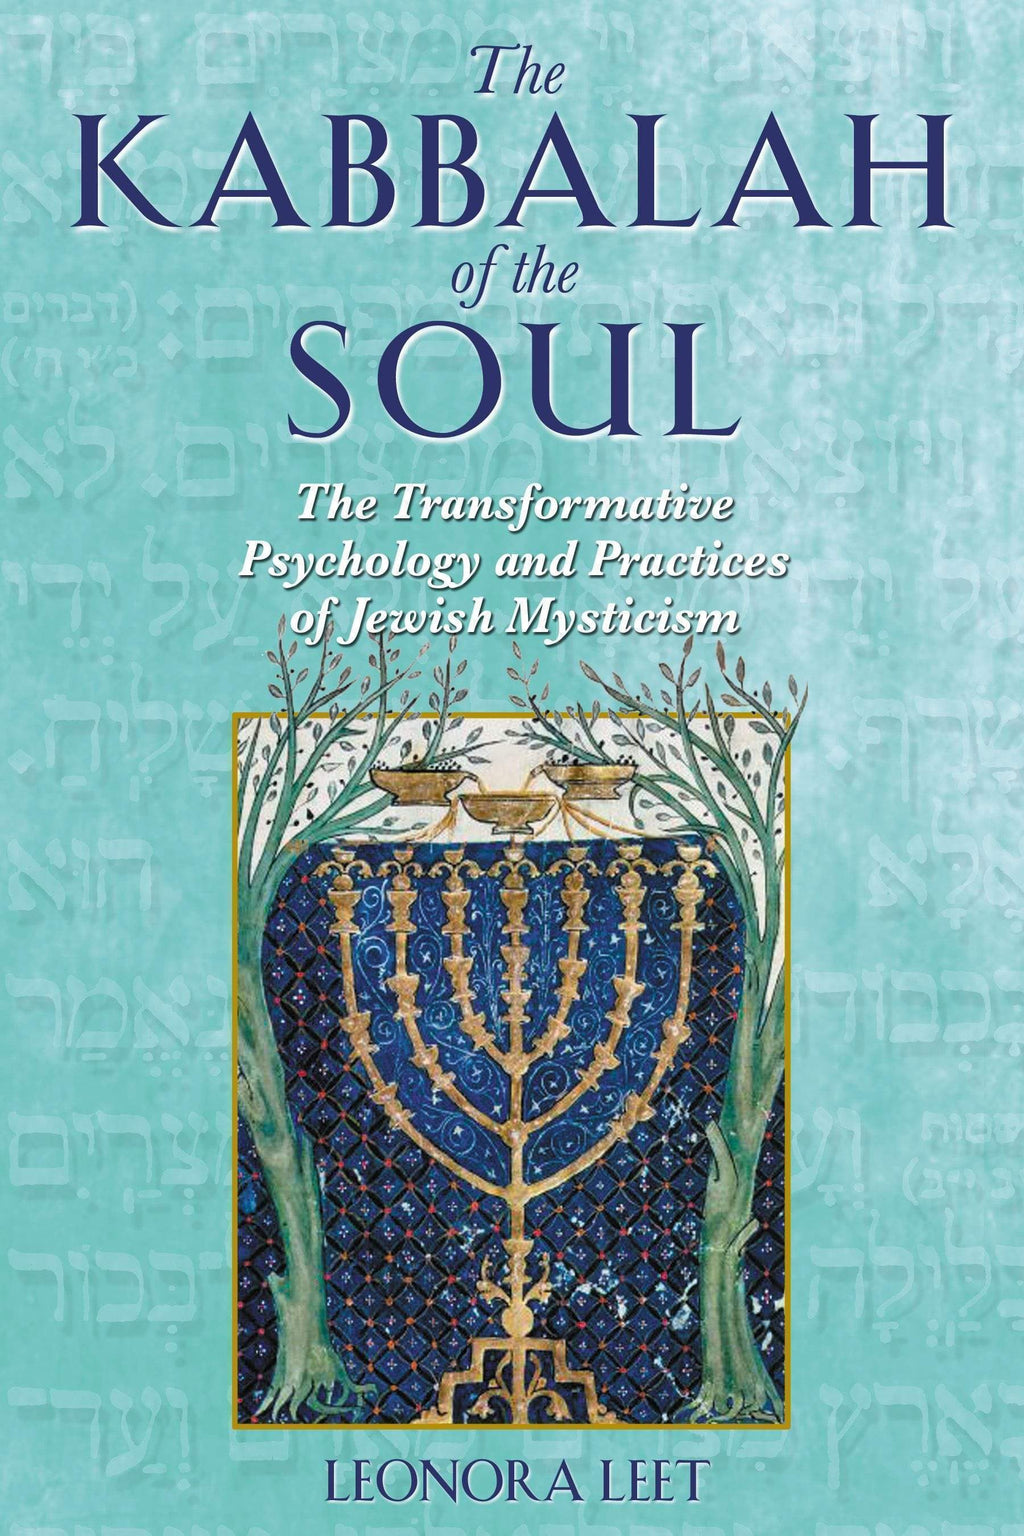 Marissa's Books & Gifts, LLC 9780892819577 The Kabbalah of the Soul